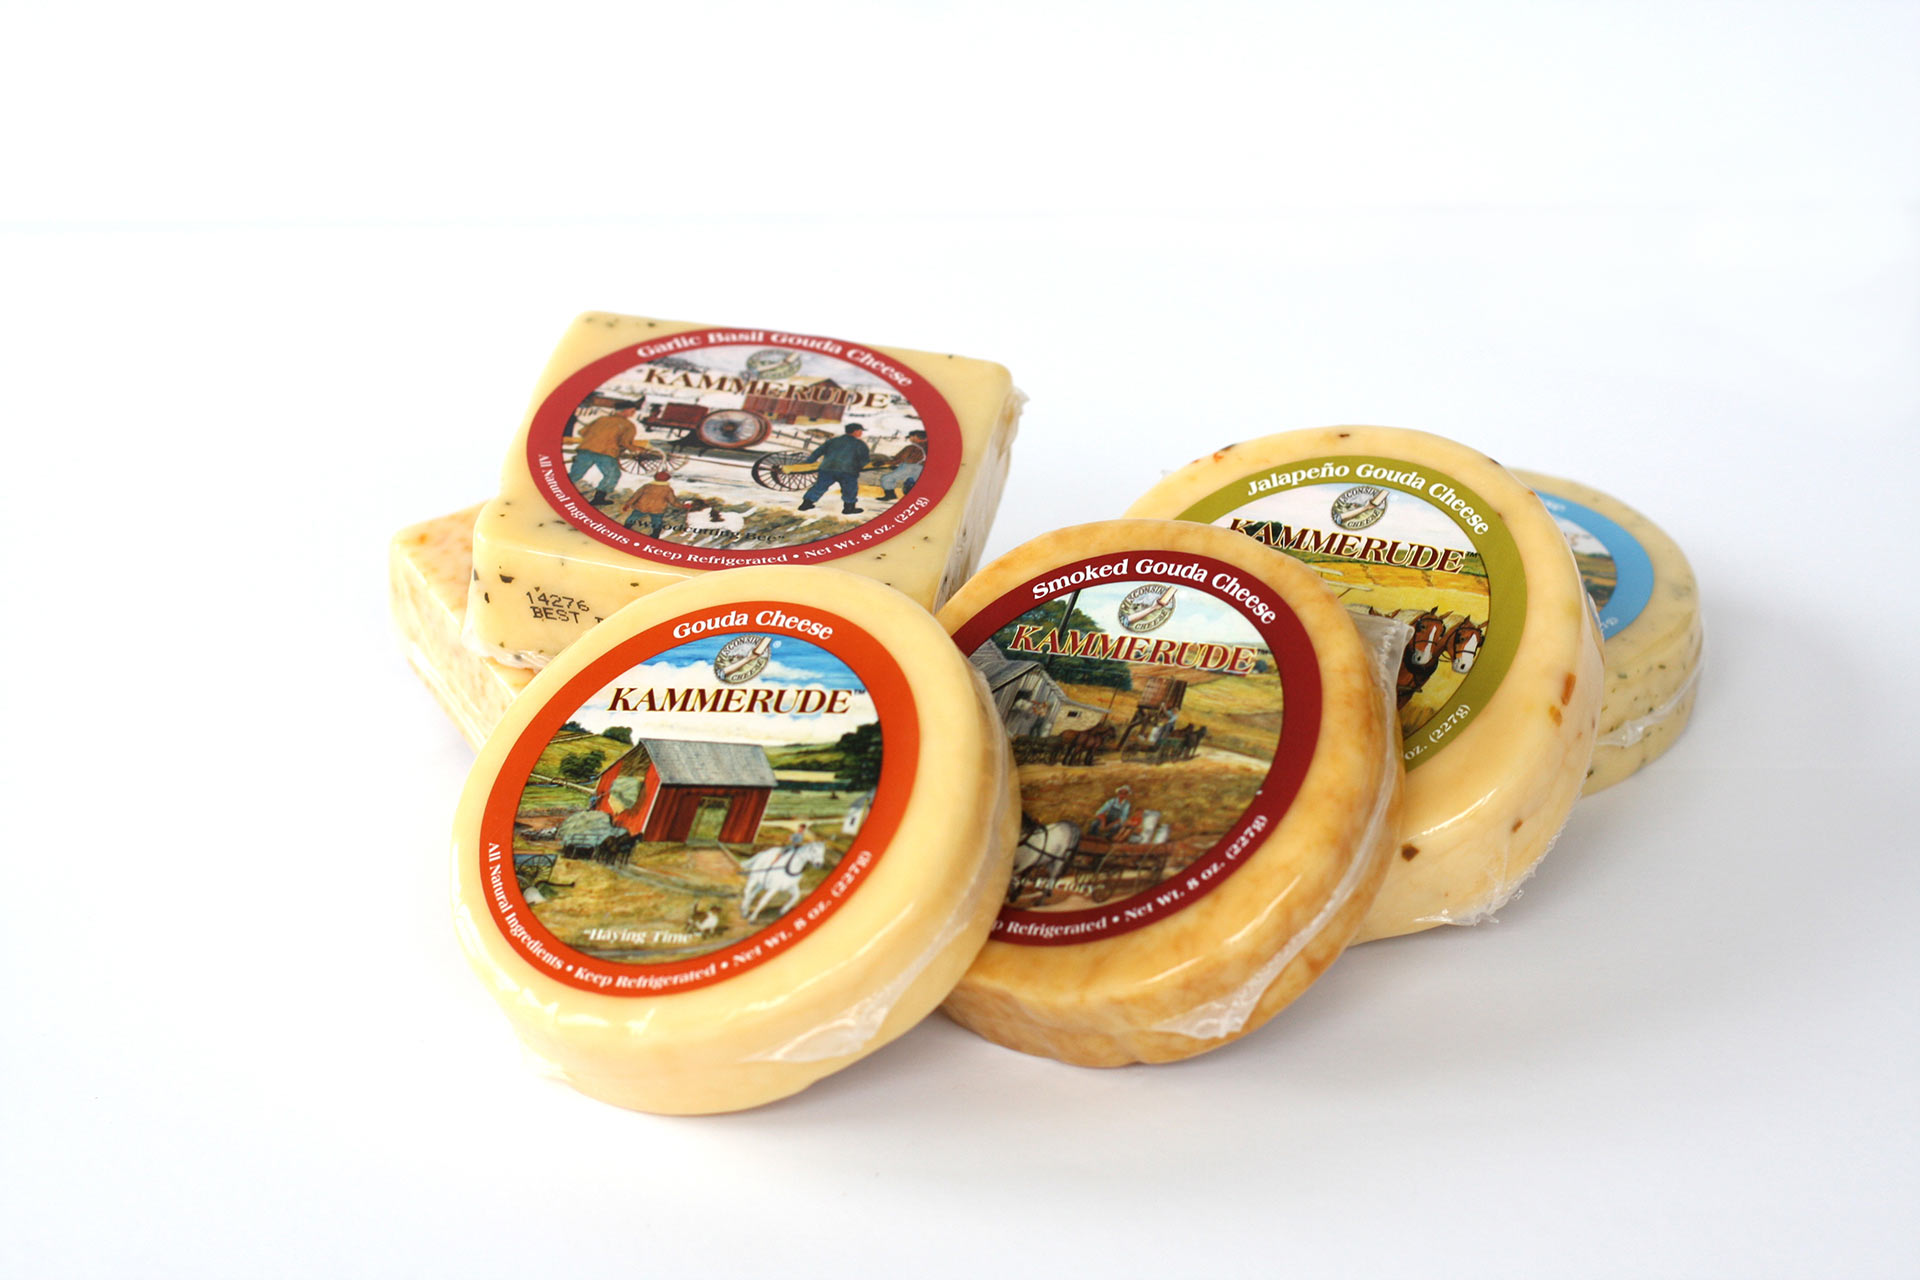 Kammerude Cheese Products